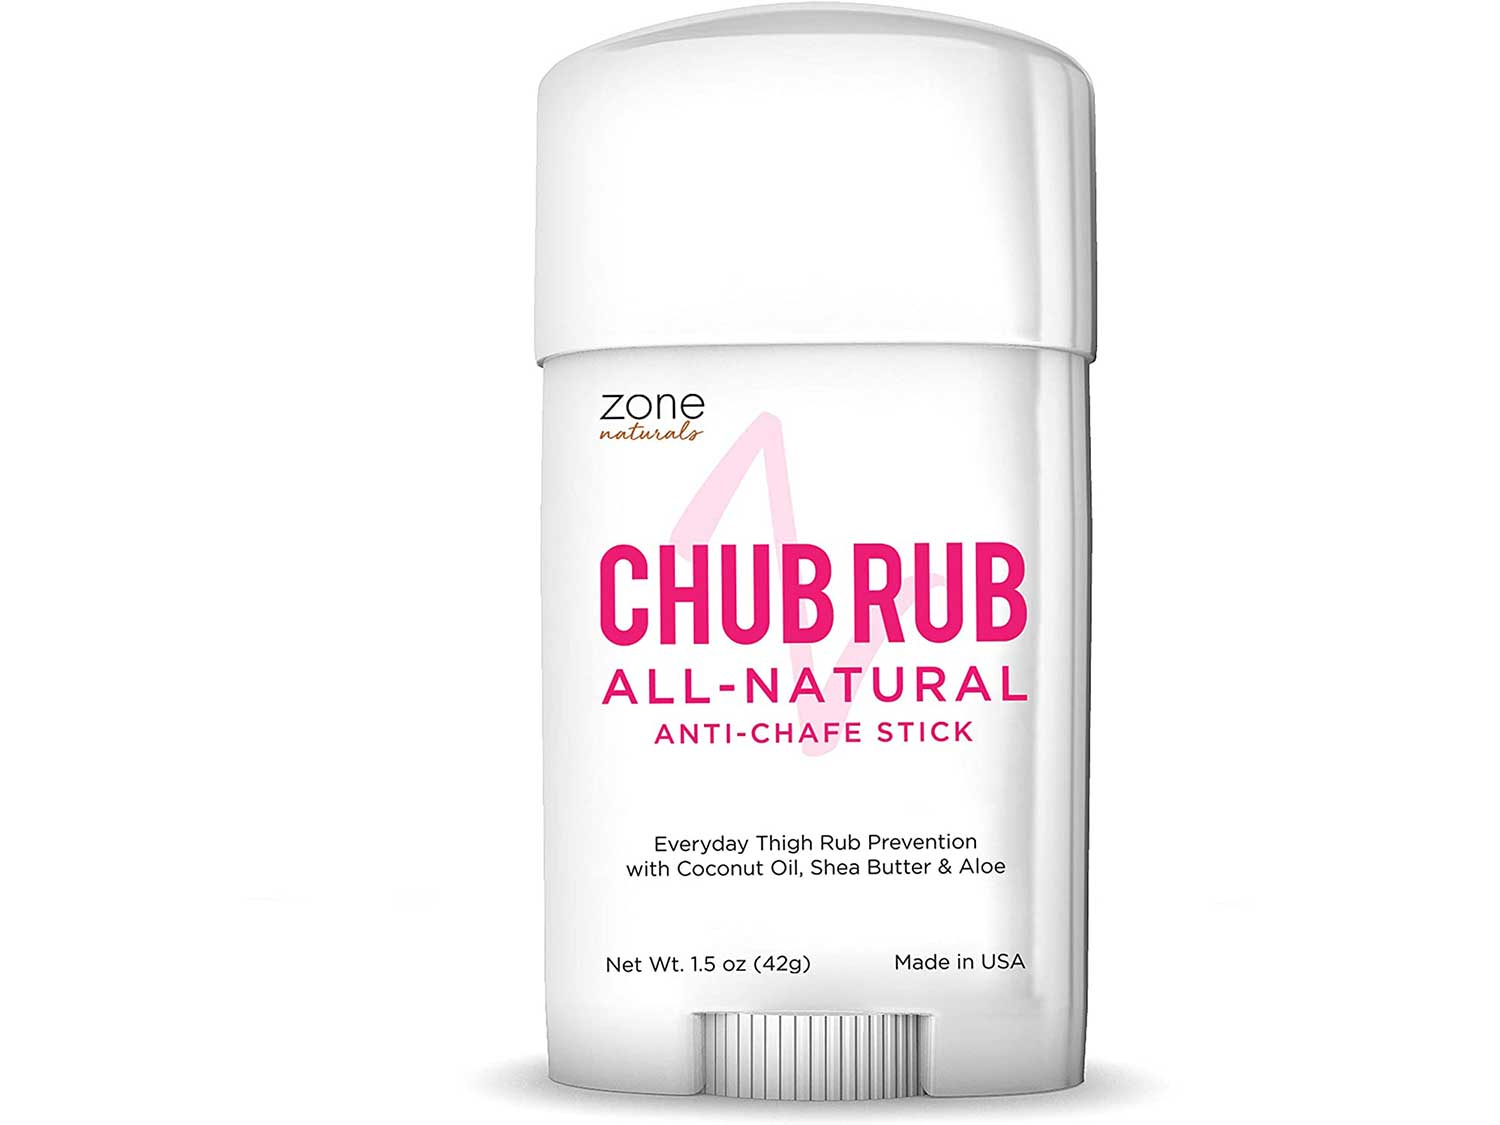 MedZone Chub Rub for Her Anti Chafe Stick - Anti Chaffing Stick for Thigh Chaffing Protection - All Natural Anti Chafing Stick by Zone Naturals